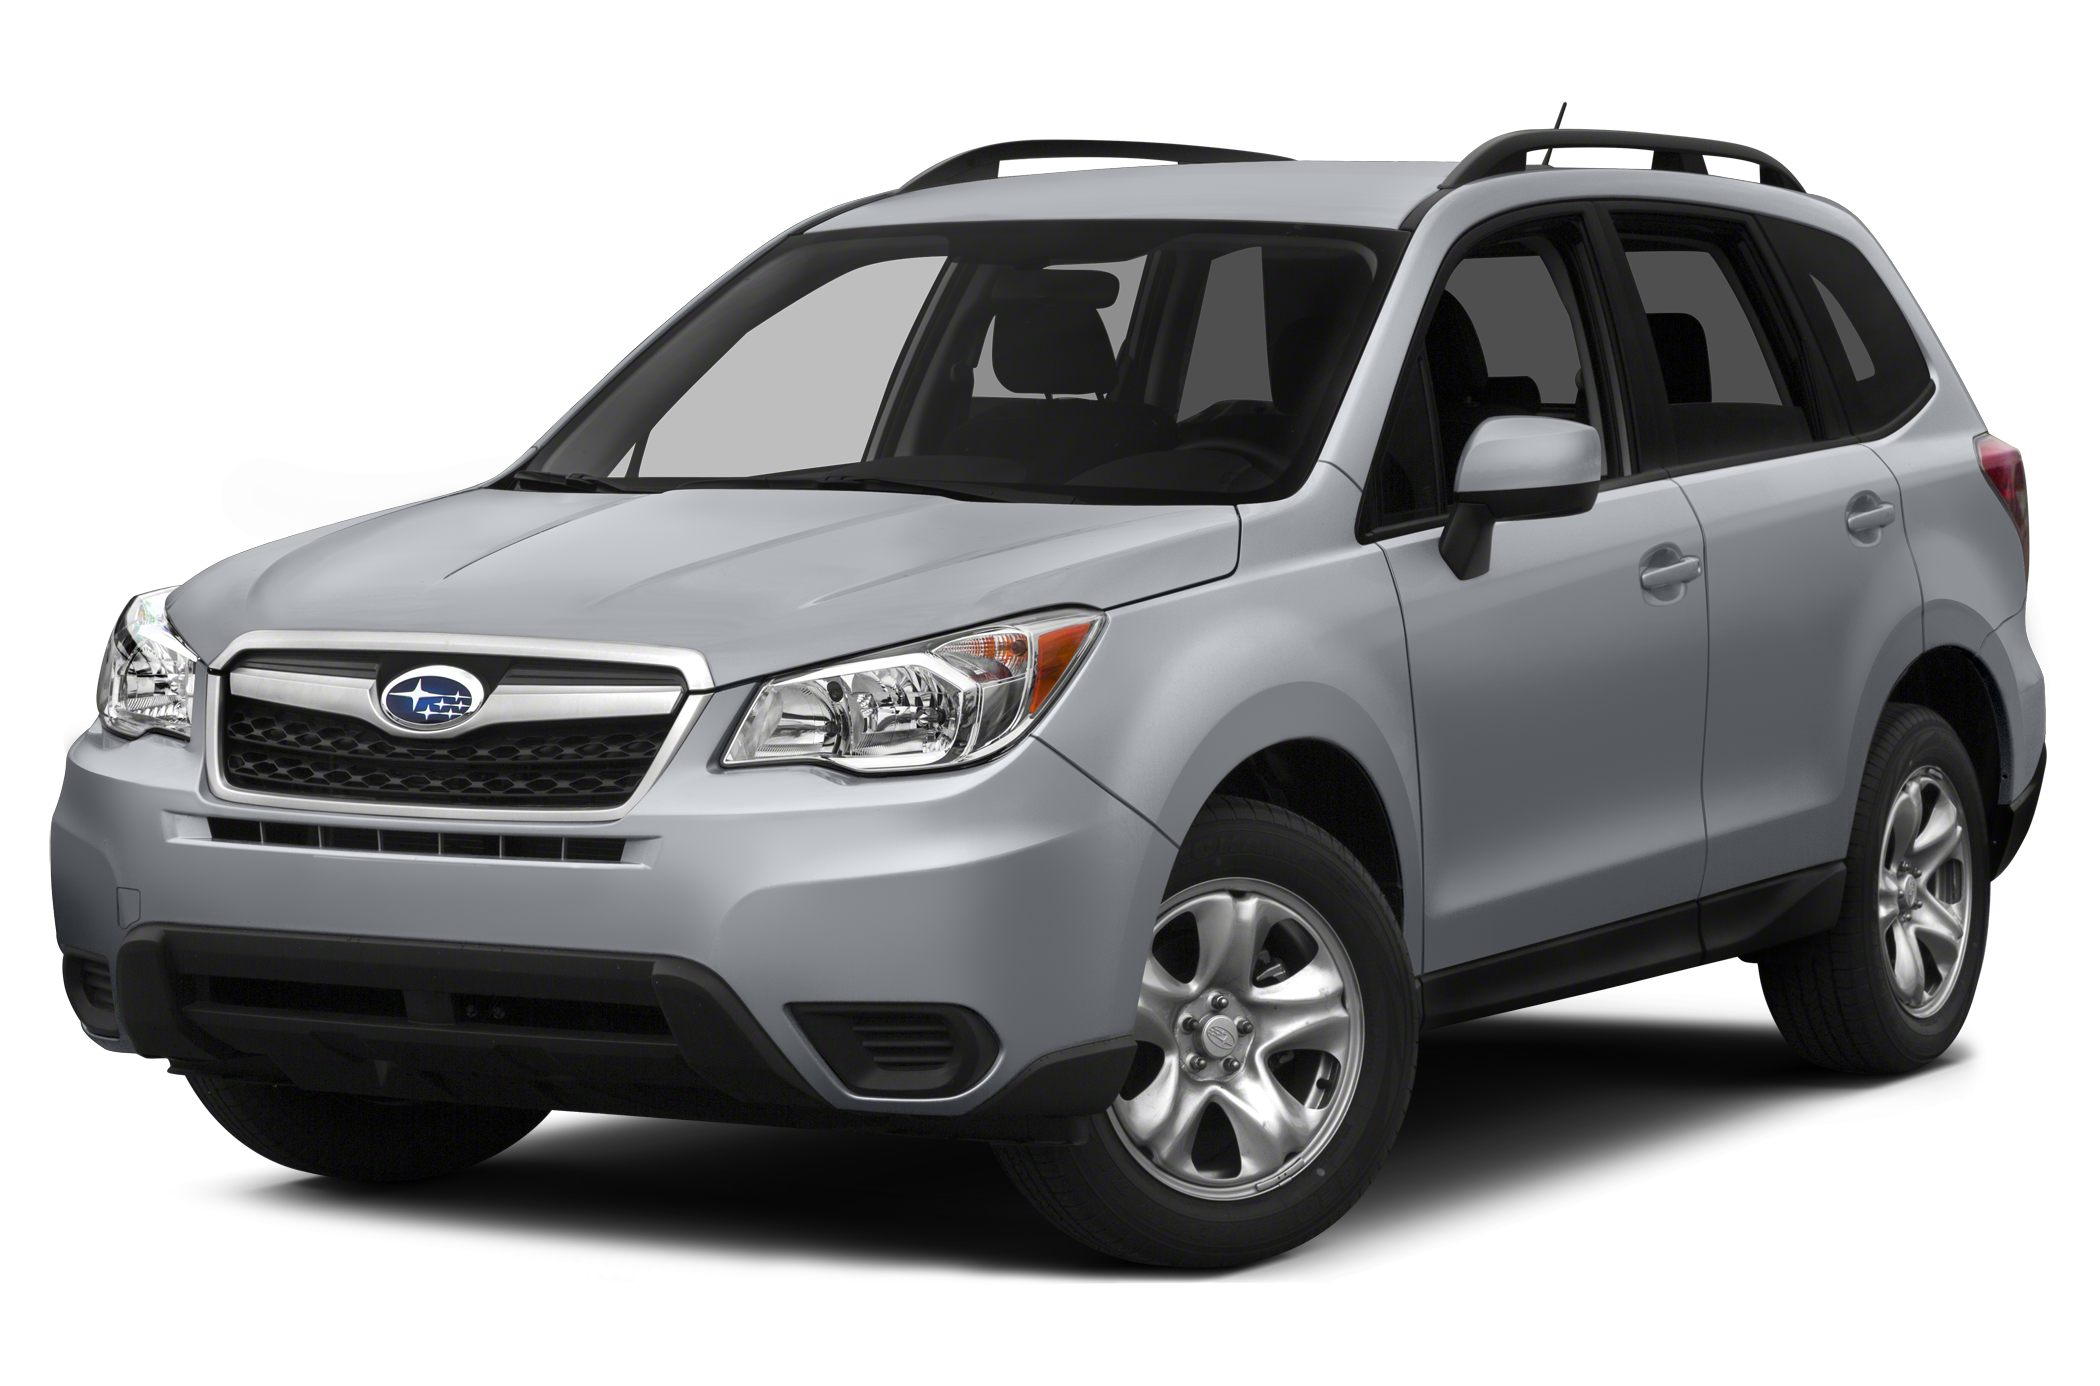 2015 Subaru Forester 2.5i Premium SUV for sale in Springfield for $25,777 with 0 miles